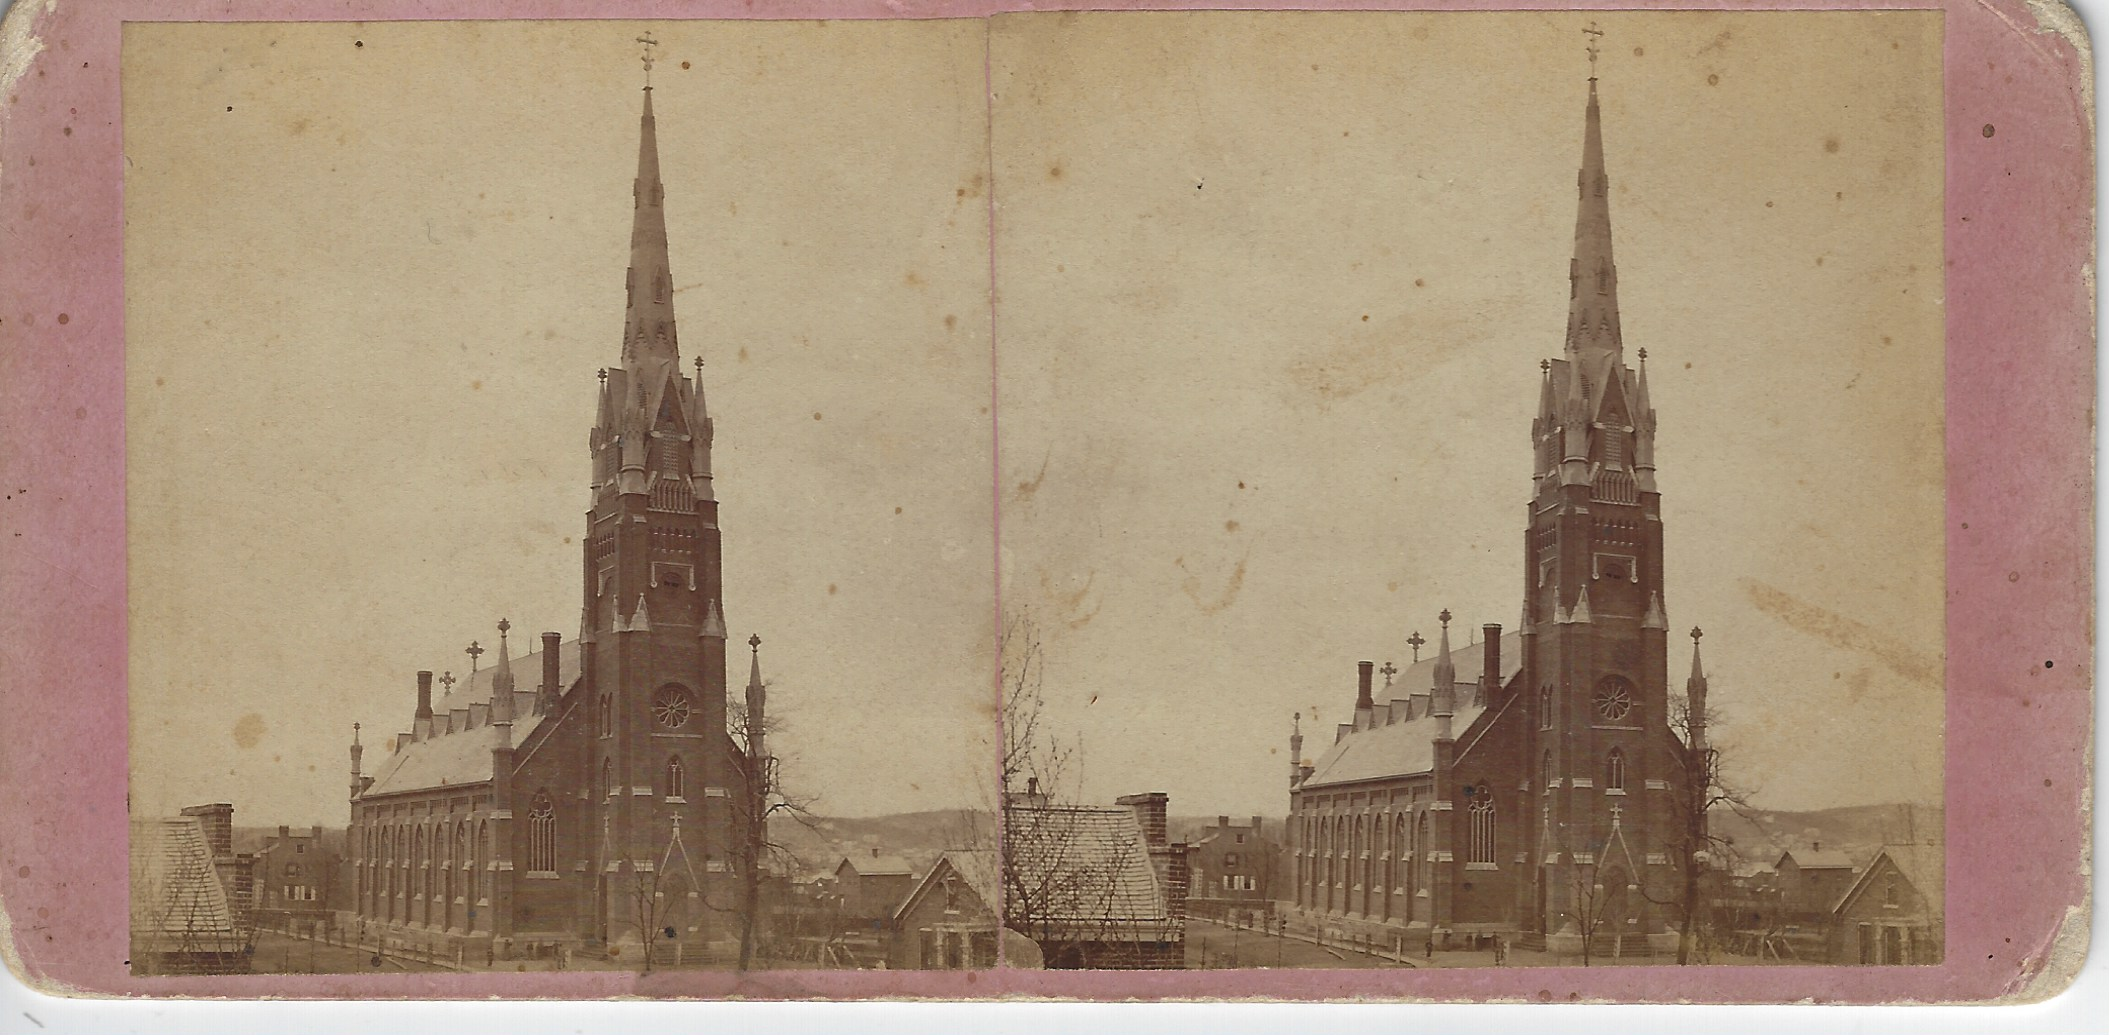 LJTP 100.216 - S. Root SMT - St. Mary's Church - c1868